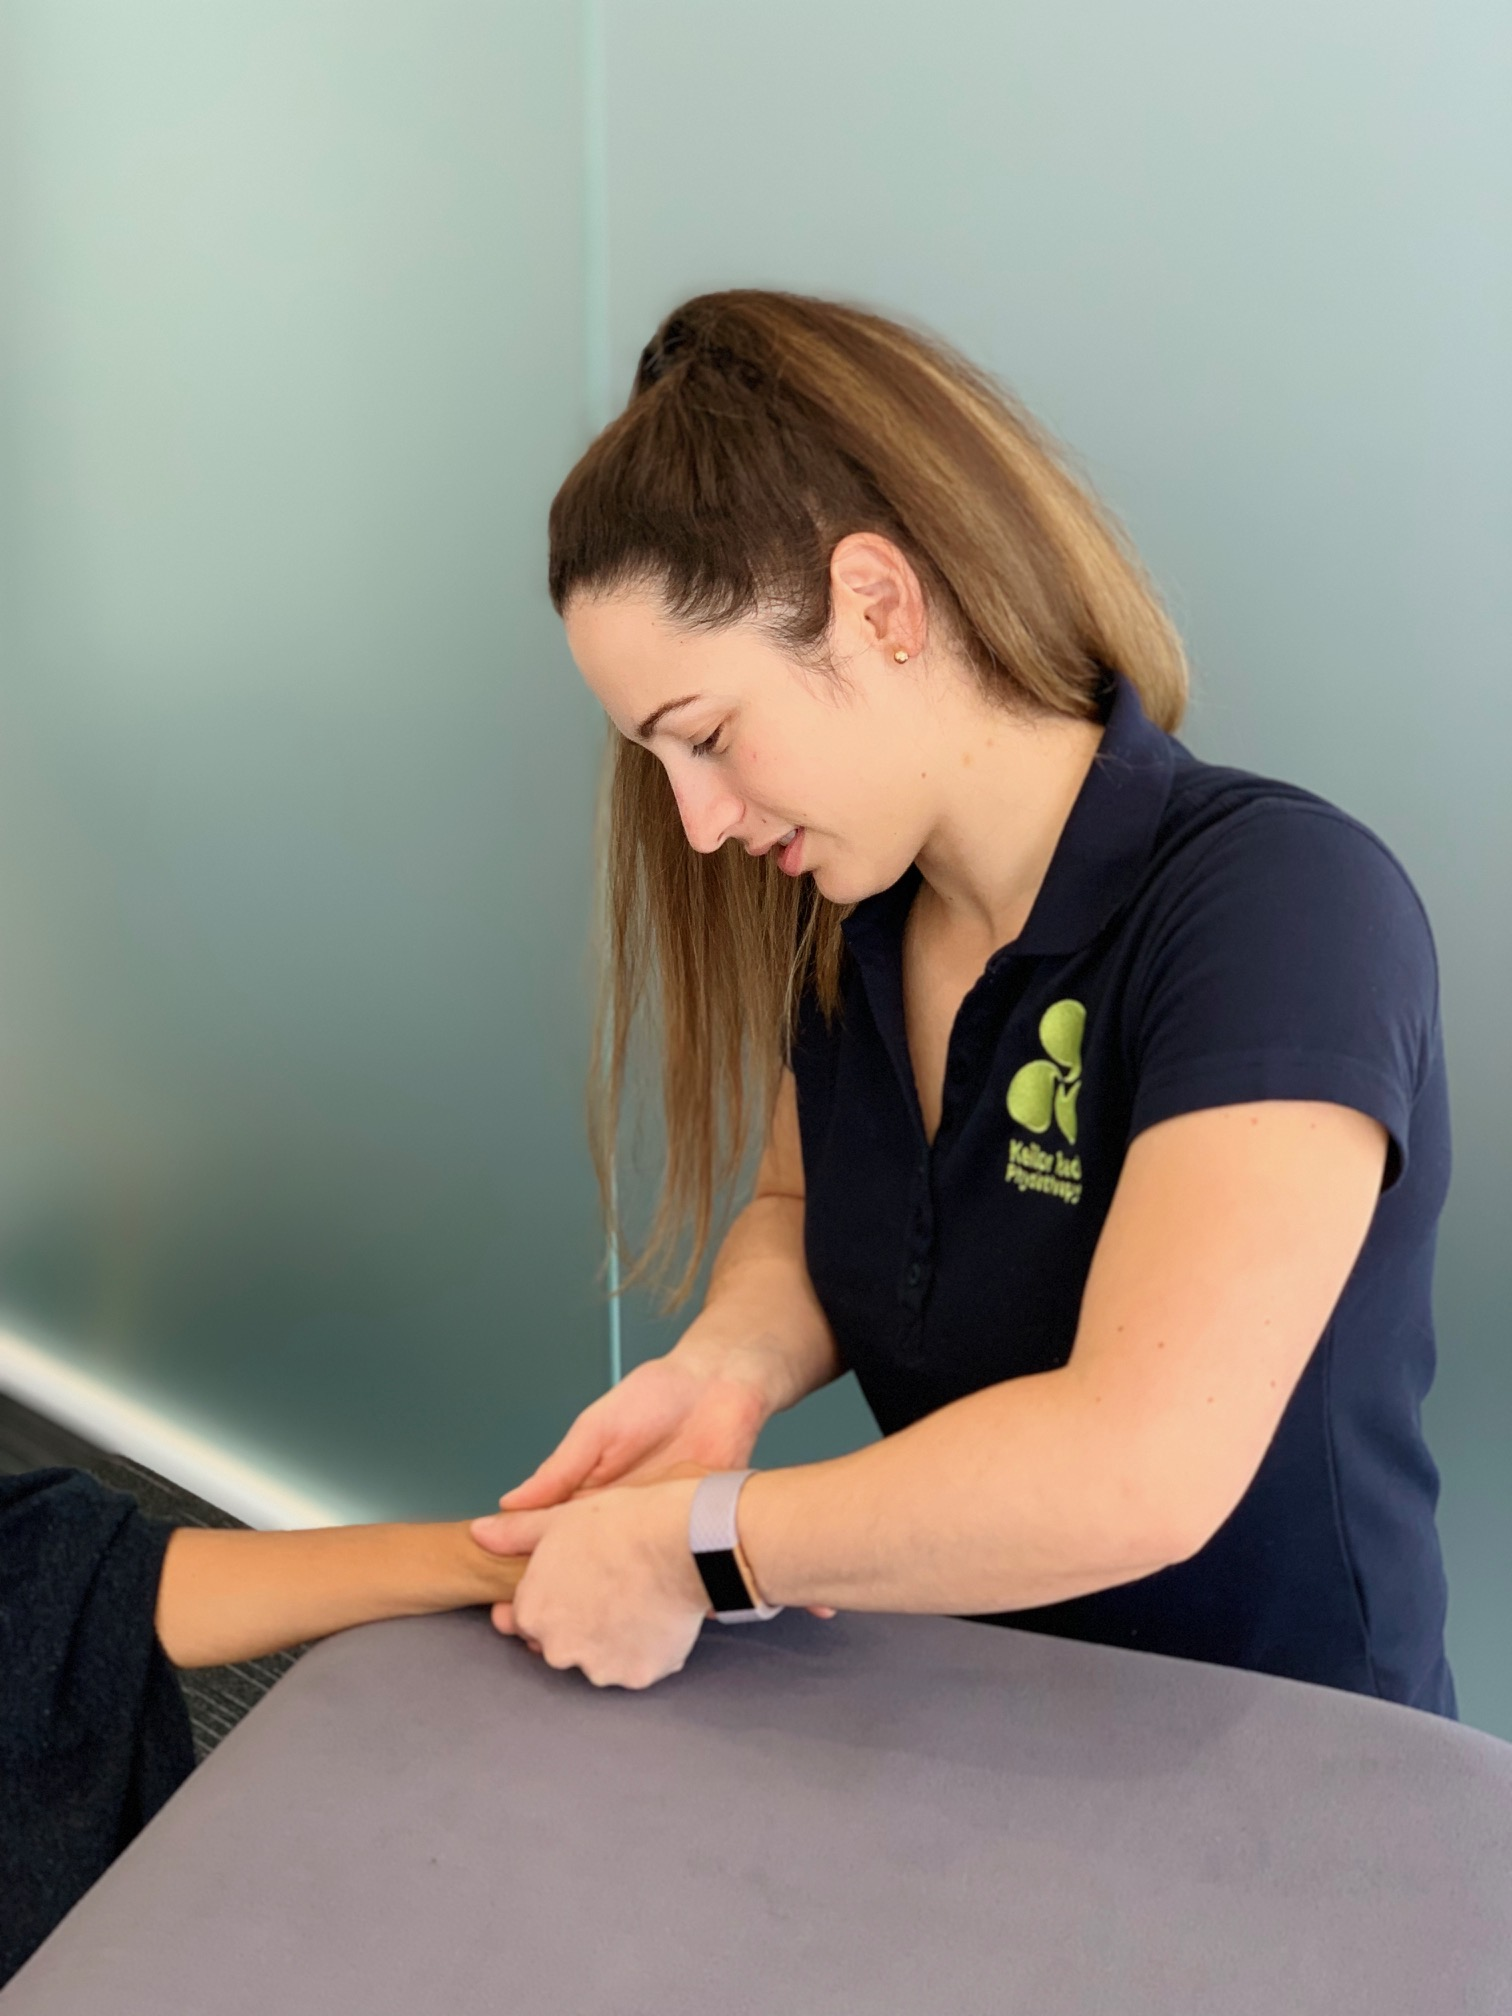 Assessment of wrist mobility in the treatment of tendinopathy.